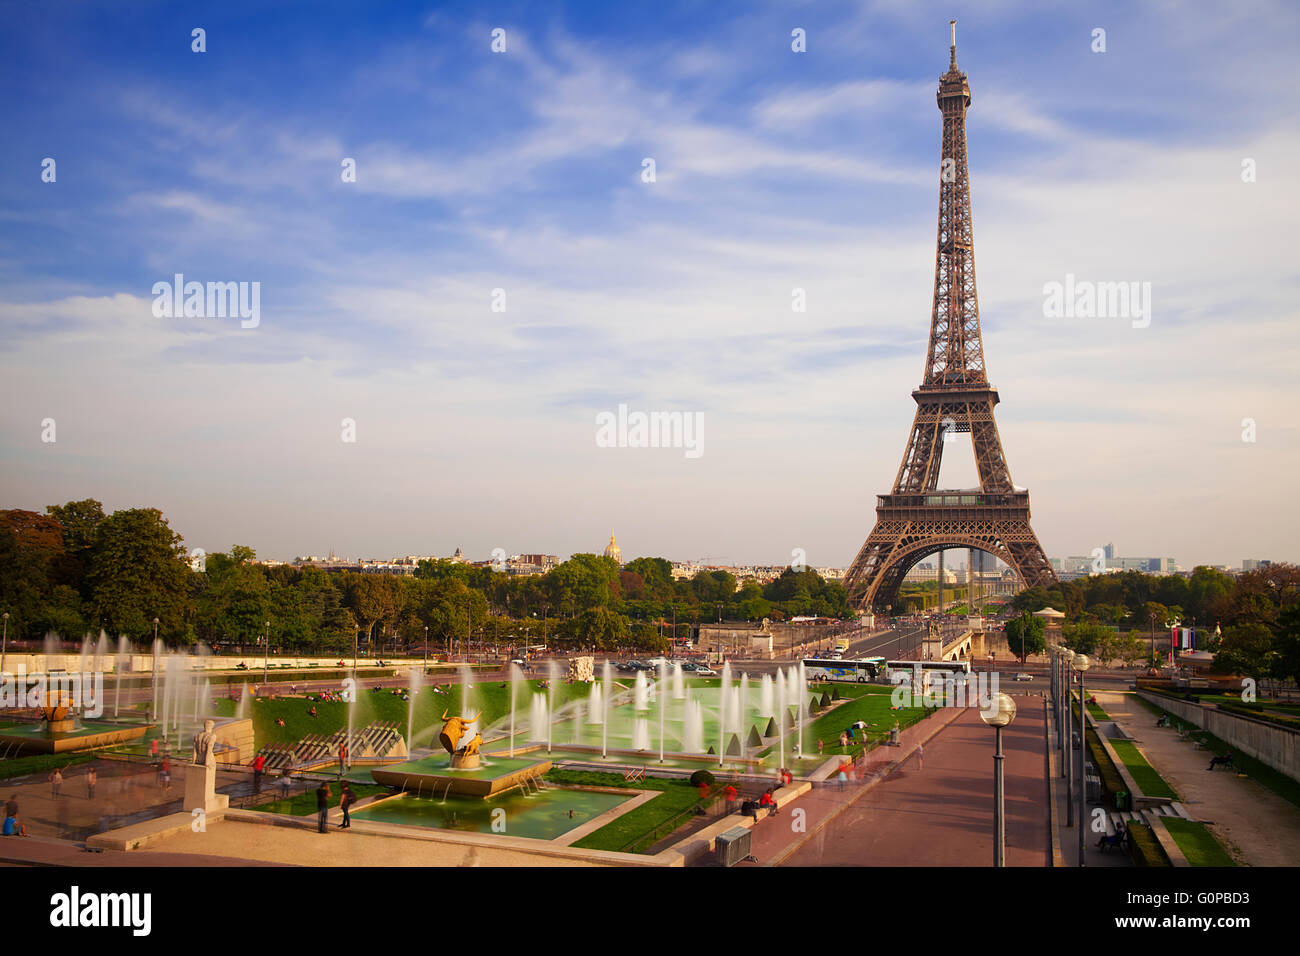 Eiffel Tower and fountains of Trocadero, Paris,  France - Stock Image